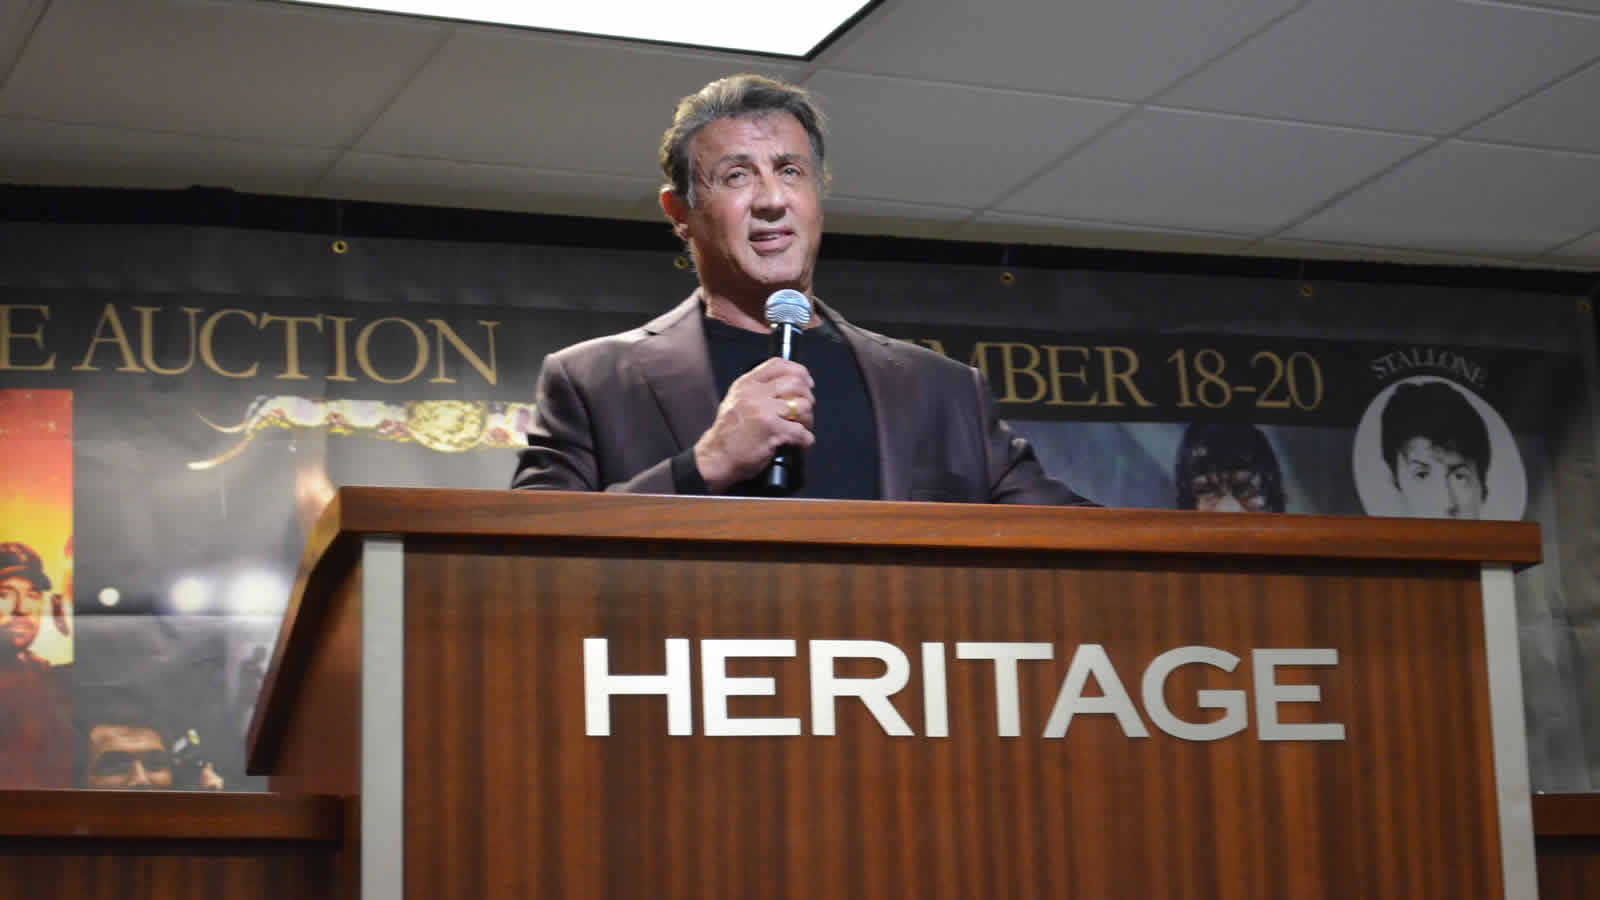 Stallone - The Auction - The Intelligent Collector